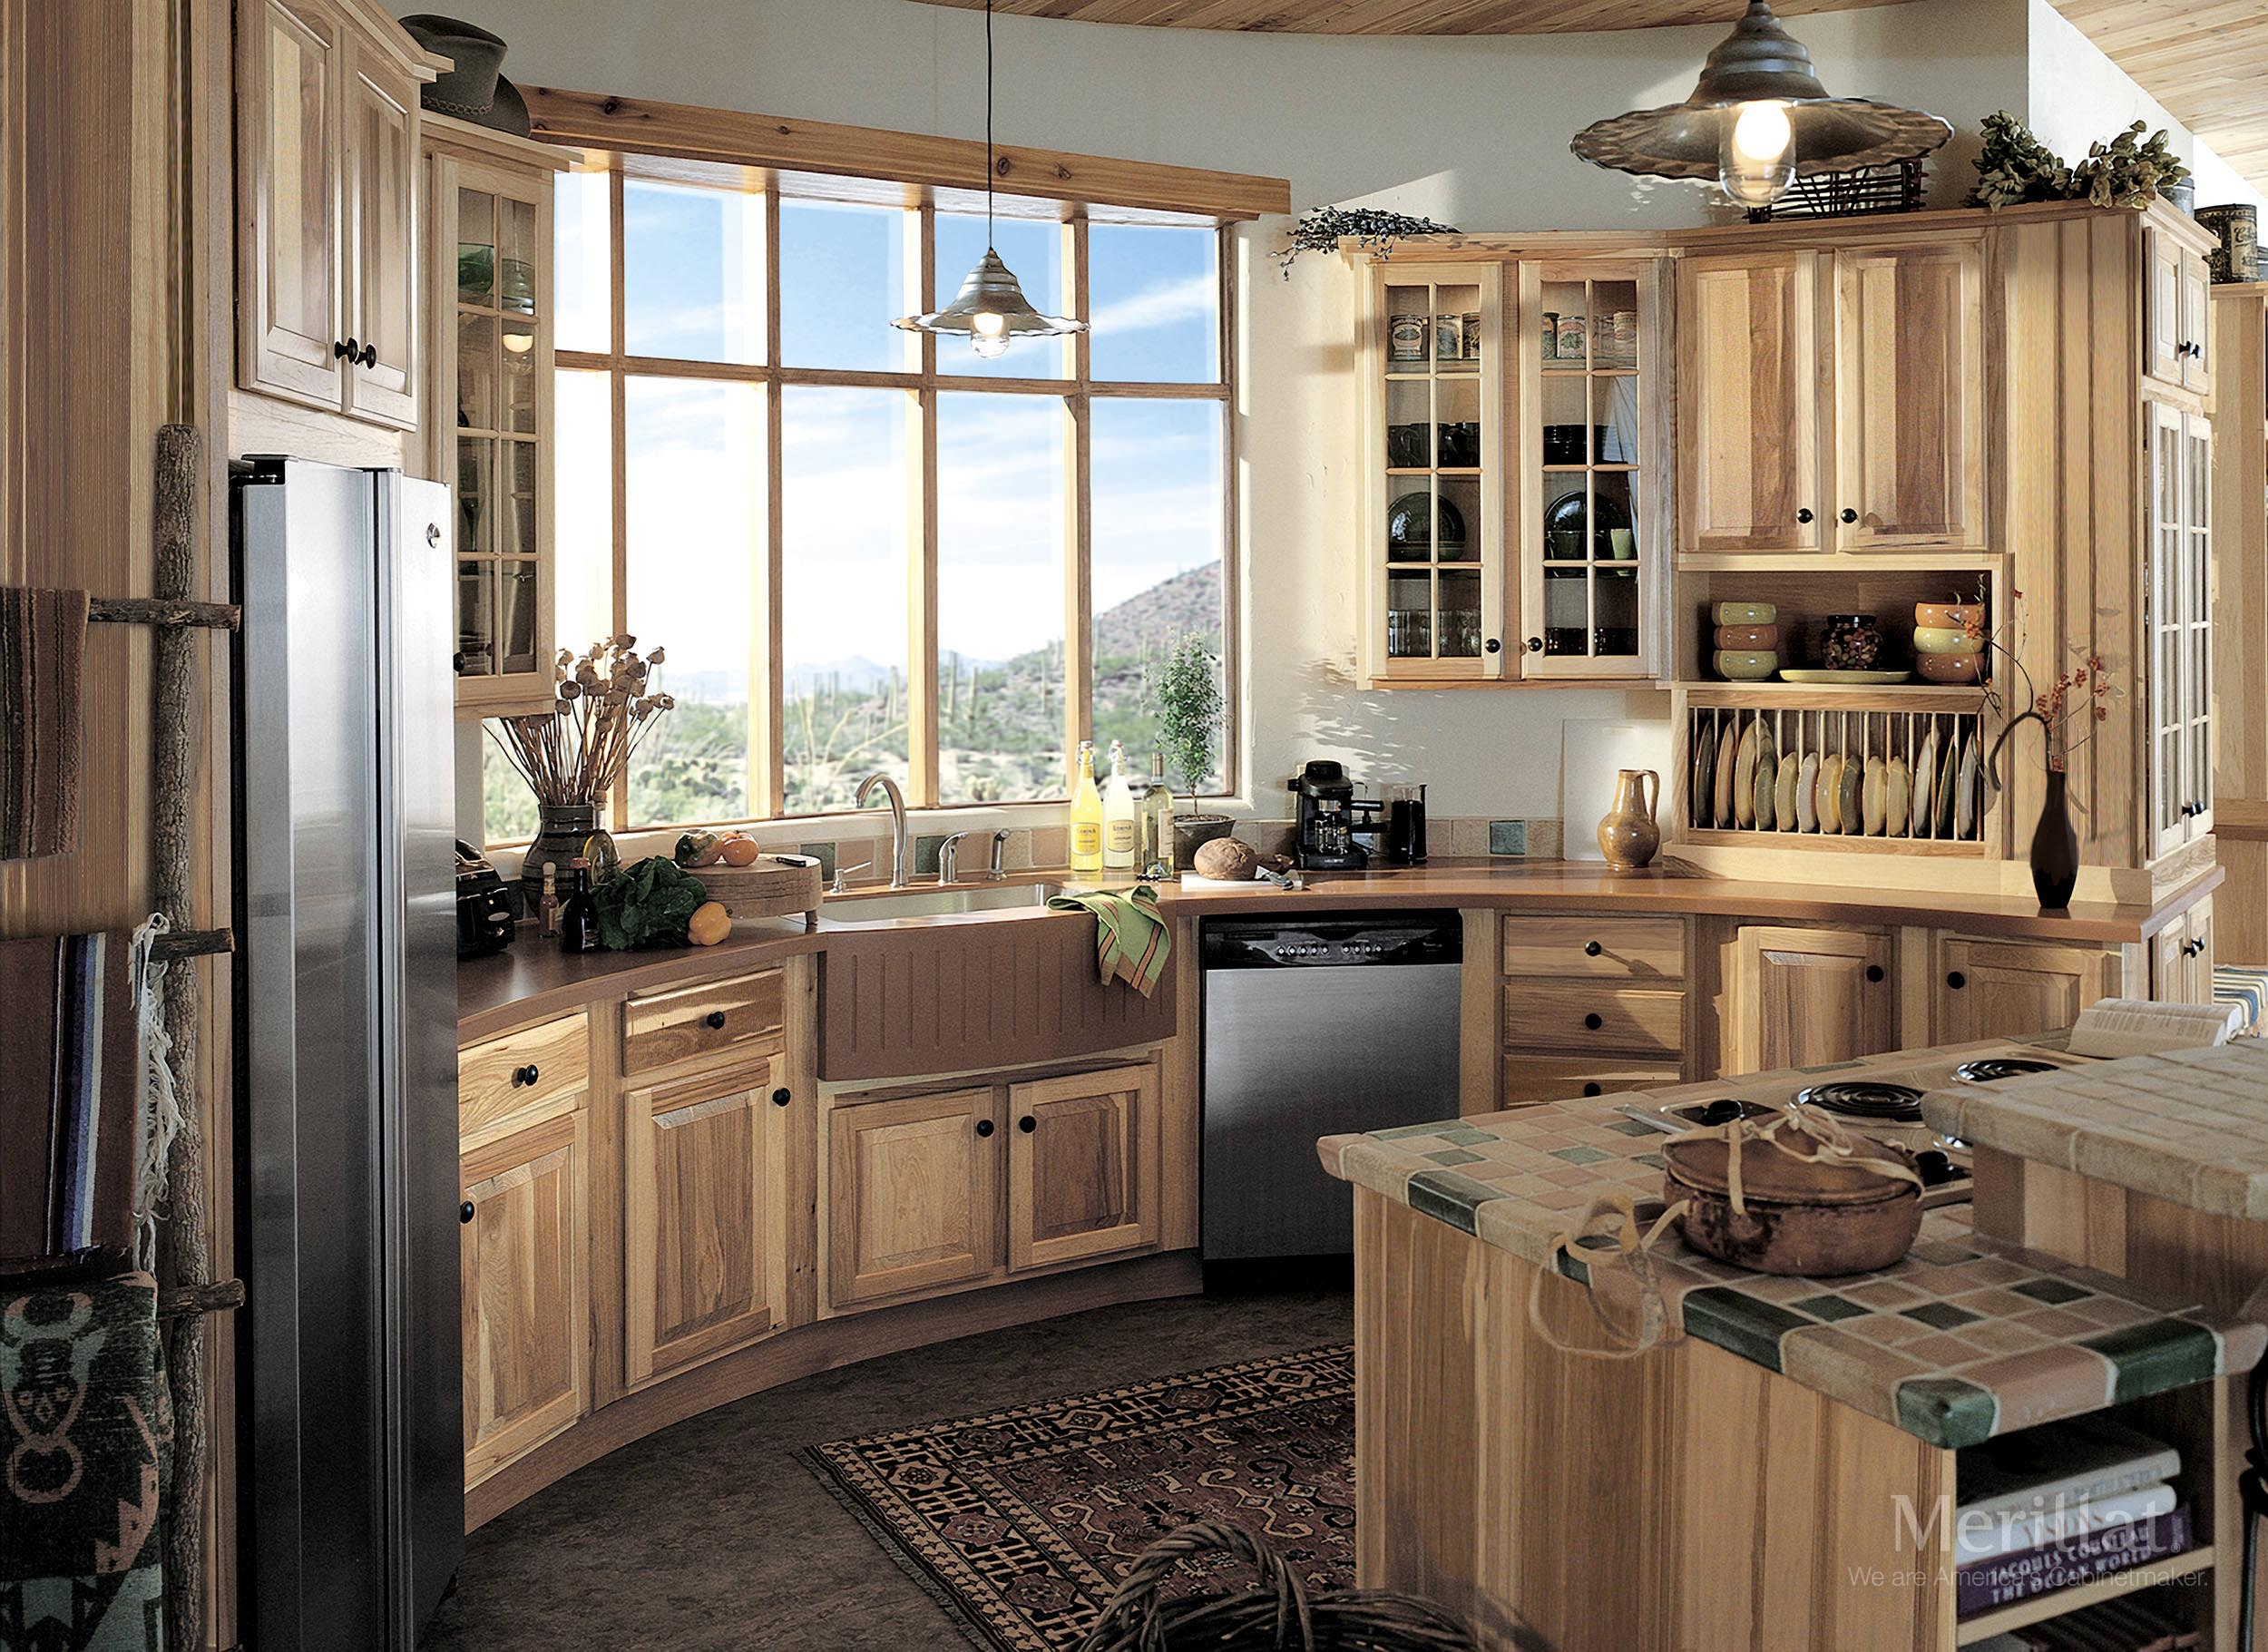 merillat classic sutton cliffs in hickory natural - Eclectic Kitchen Cabinets